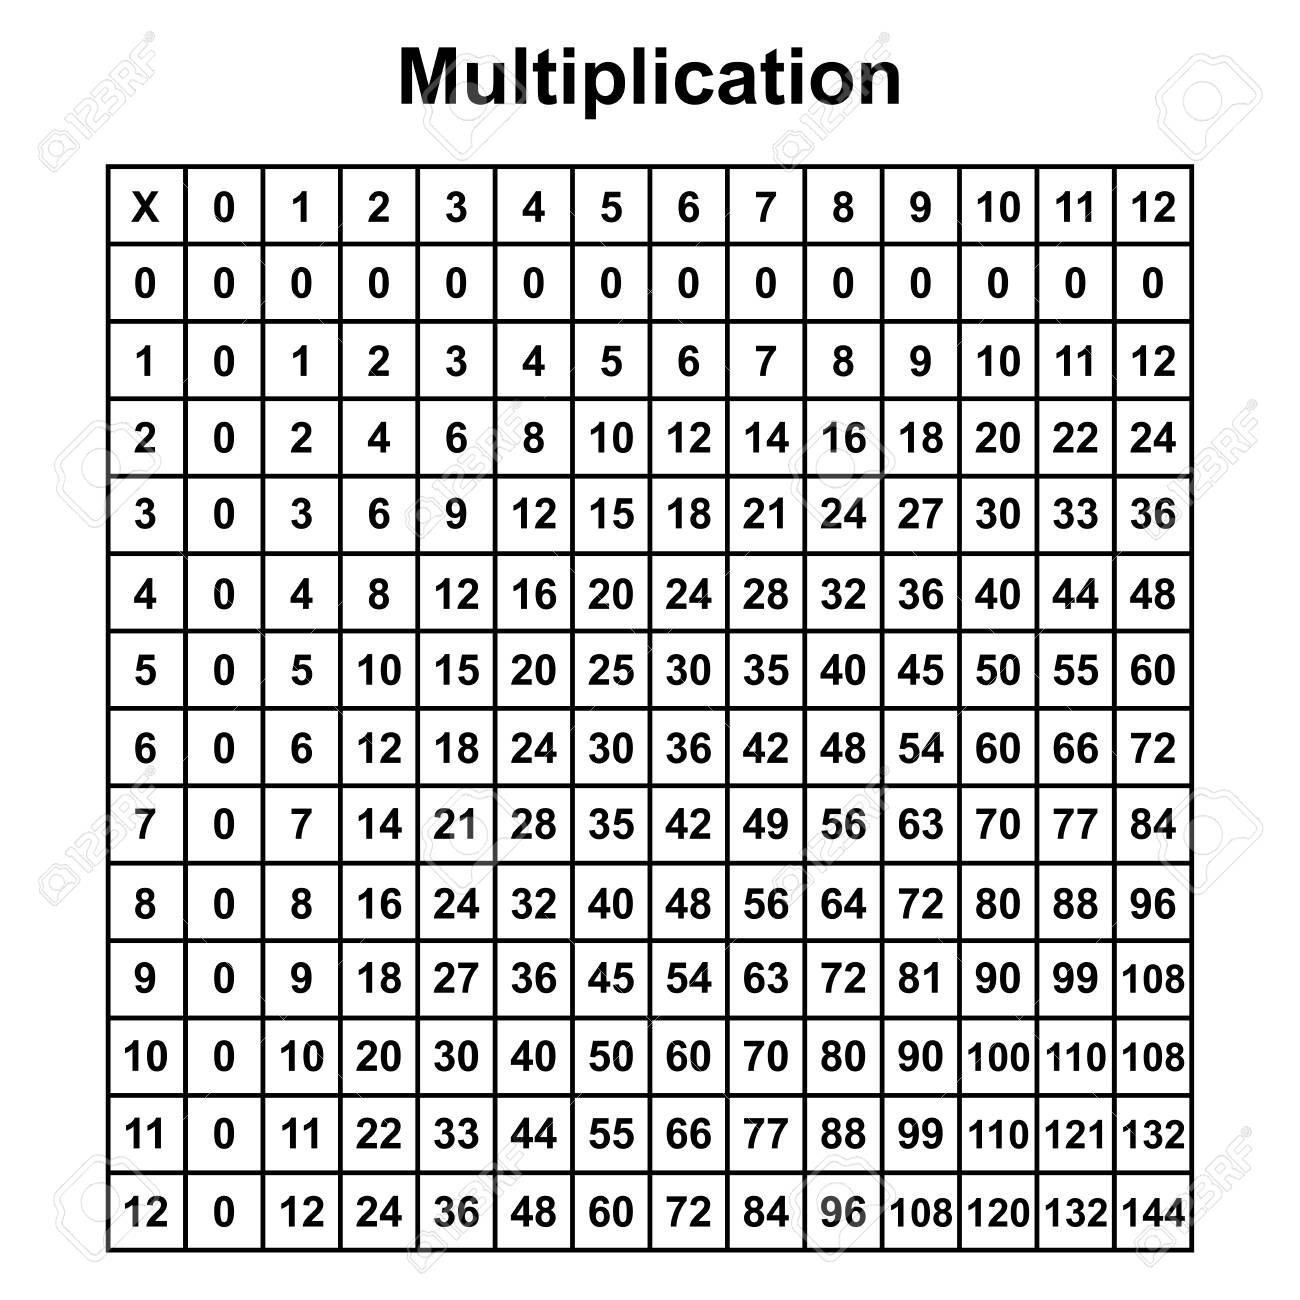 Multiplication Table Chart Or Multiplication Table Printable..